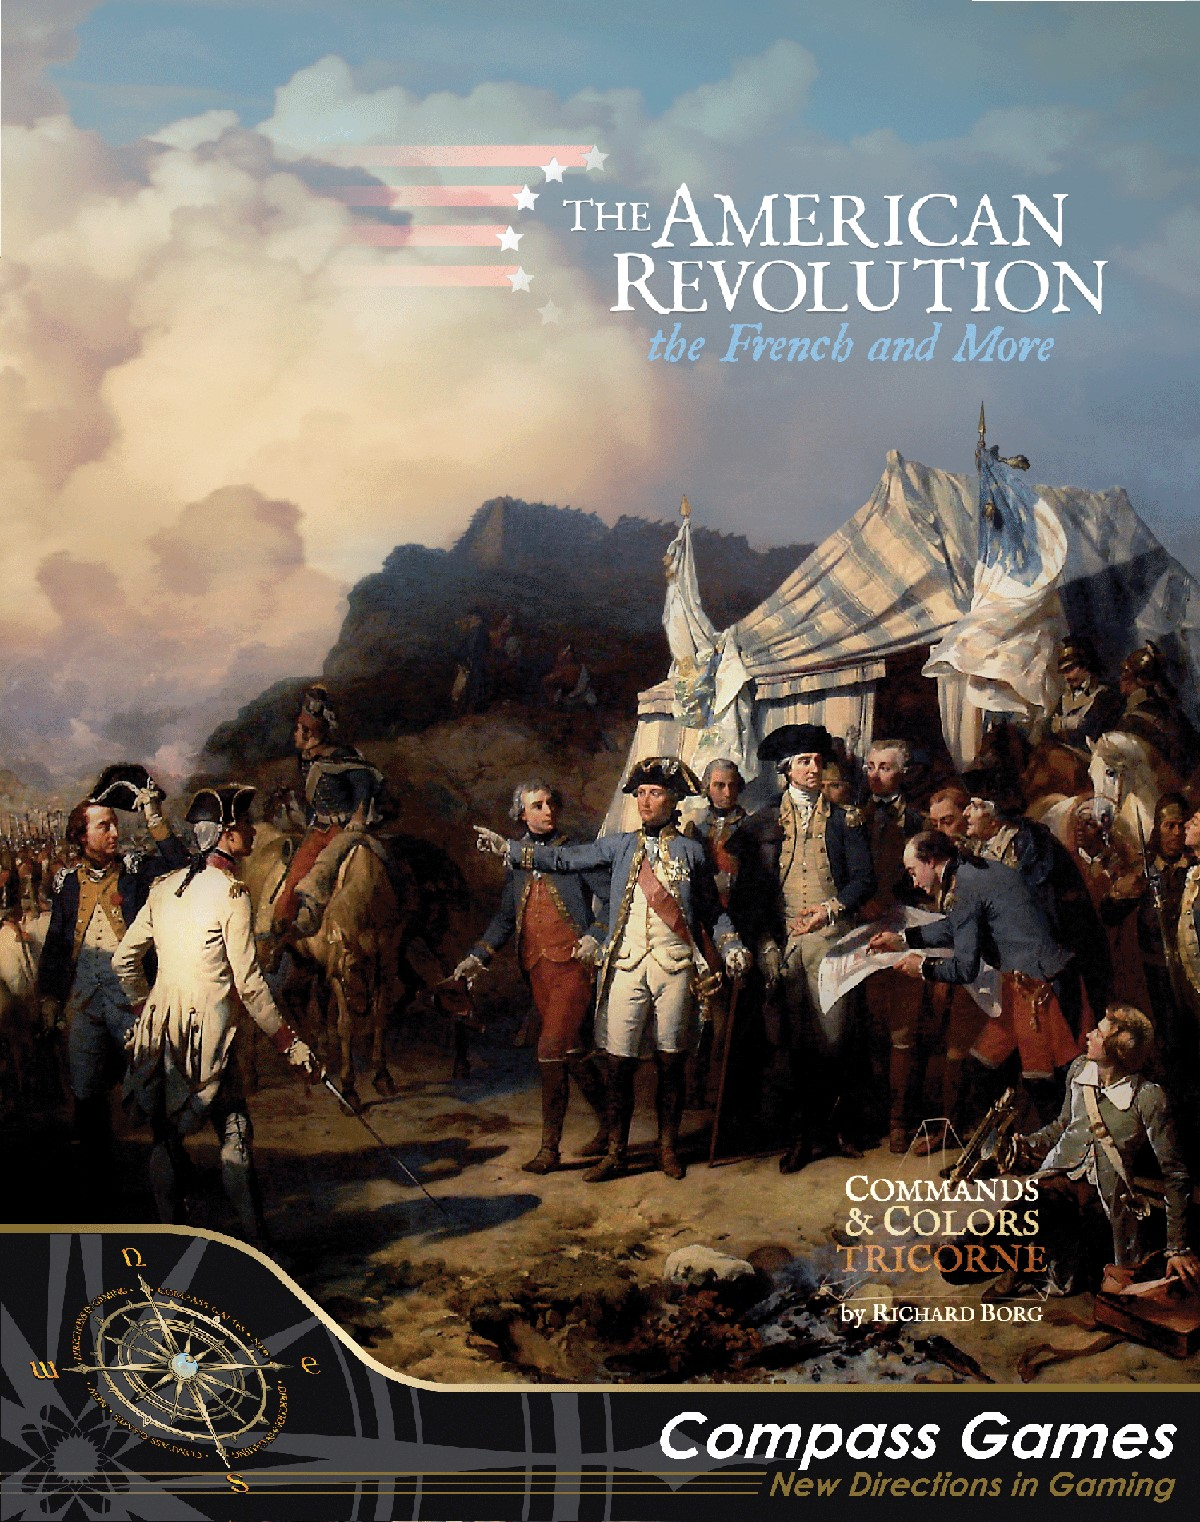 Commands And Colors: Tricorne Expansion 1 - The American Revolution War Game Box